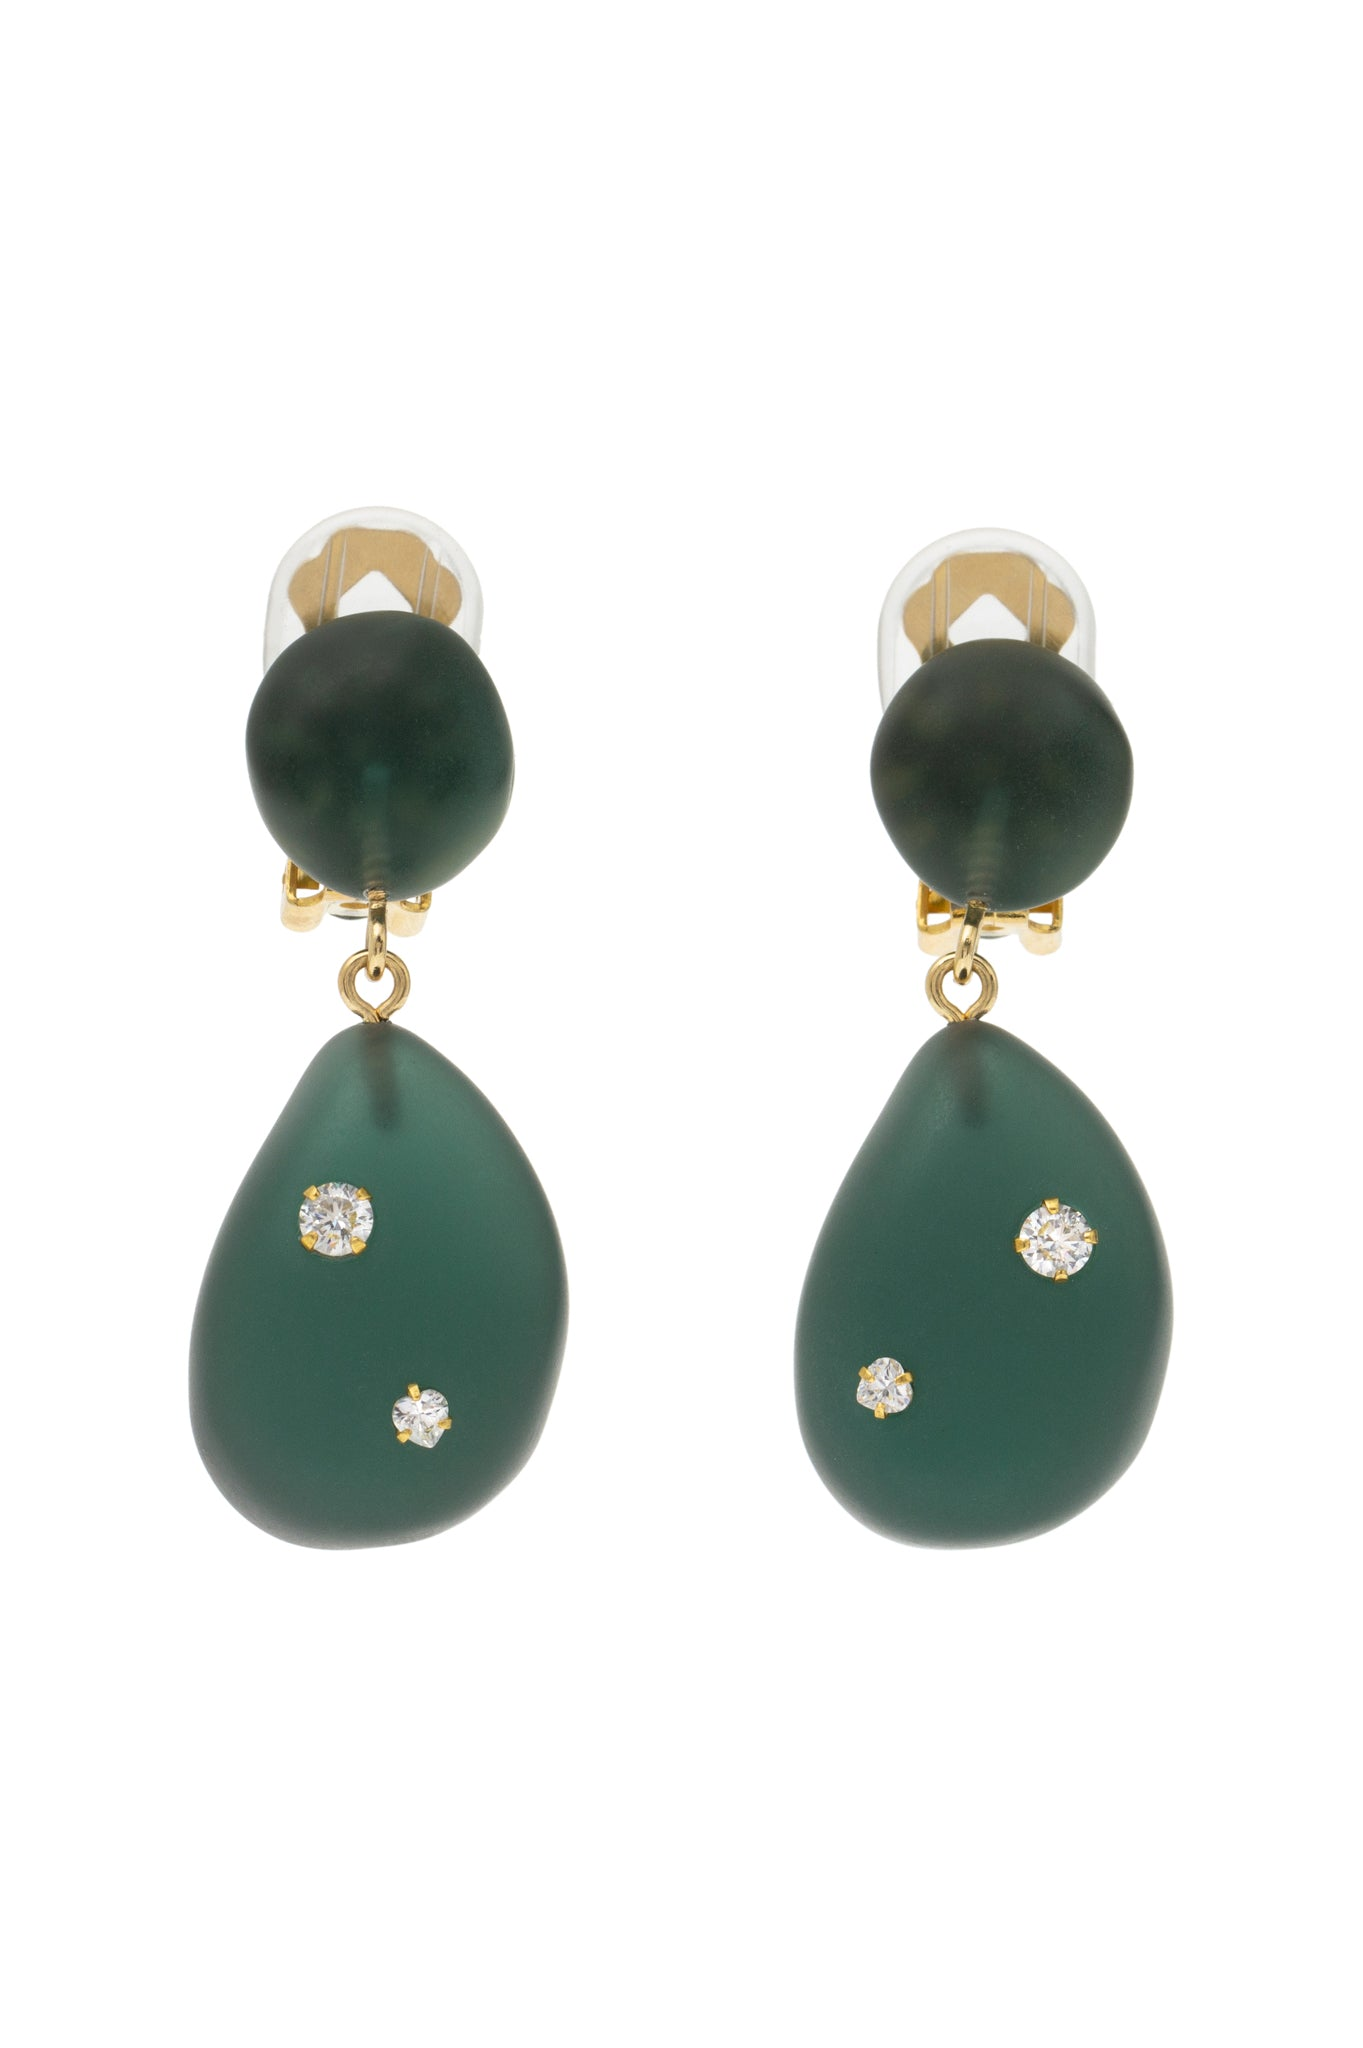 DARK GREEN ORGANIC DOUBLE EARRINGS